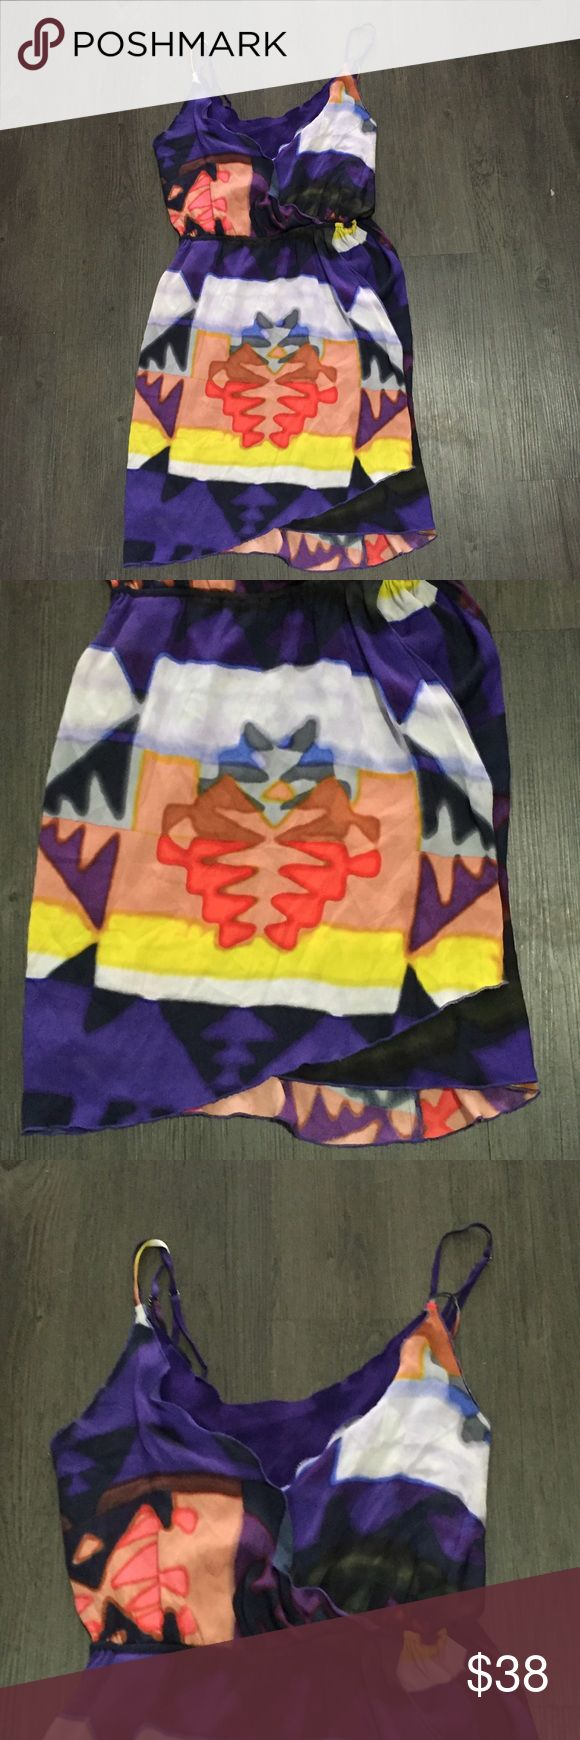 Alice + Olivia SILK tank top dress Aztec purple XS Alice + Olivia dress. 95% silk. Multi color Aztec print design. Watercolor like. Tank top straps. Good preowned condition but has some light picks and some light spotting that isn't noticeable when wearing. See last photo. Elastic waistband. Gorgeous dress. Size XS. (The inside brand/size tag has came untacked on one side but doesn't effect the wear of the dress) Alice + Olivia Dresses Mini